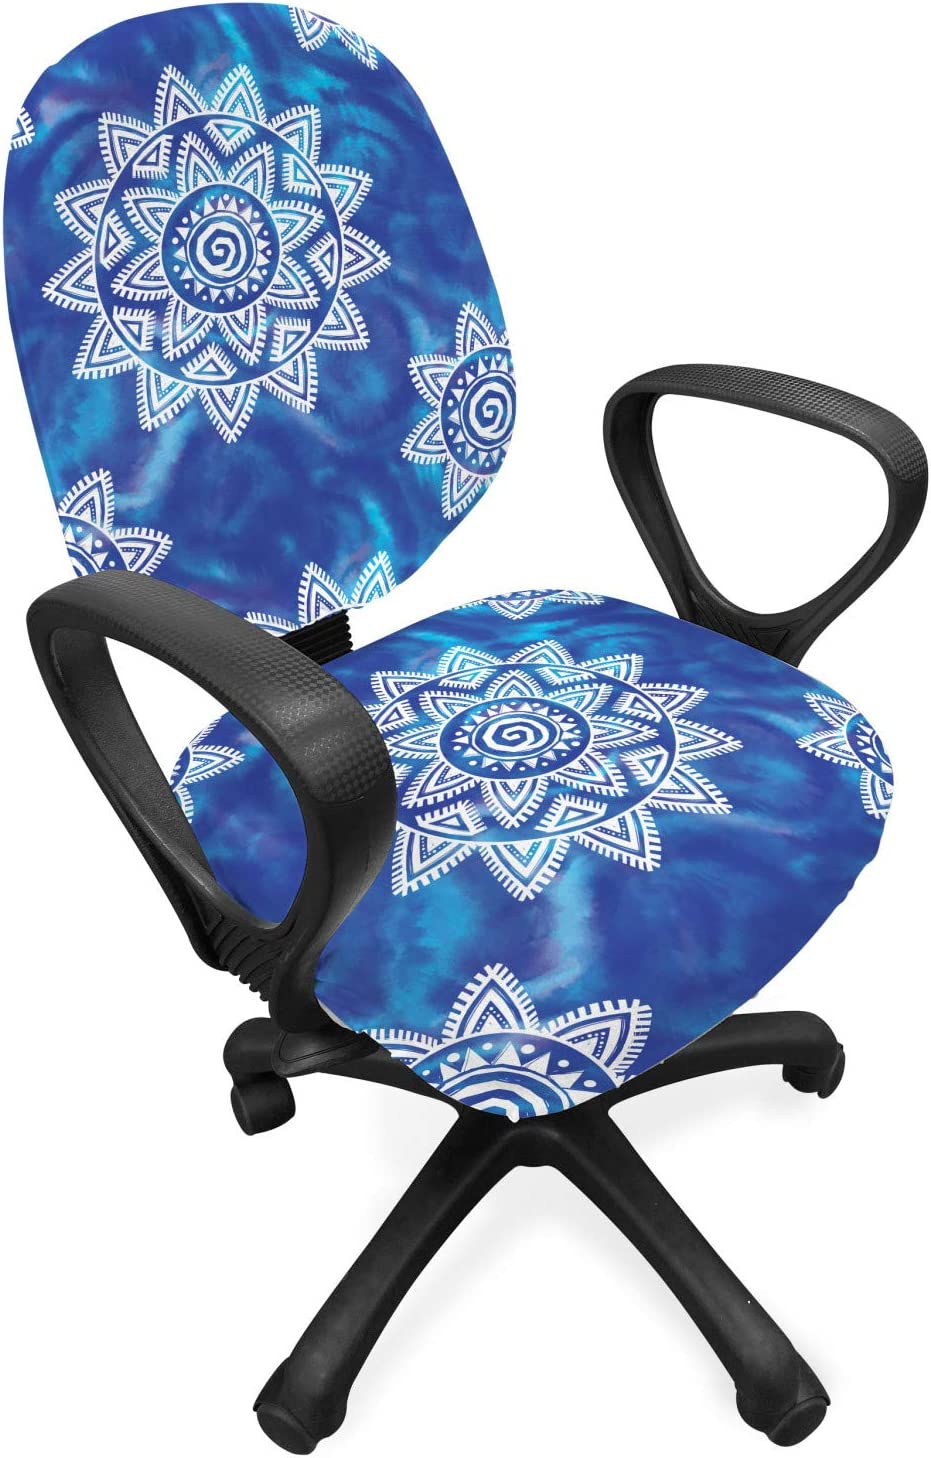 Lunarable Boho Office Chair Slipcover, Oriental Sun and Flower Motif on Watercolor Style Brush Strokes Background, Protective Stretch Decorative Fabric Cover, Standard Size, Purple White